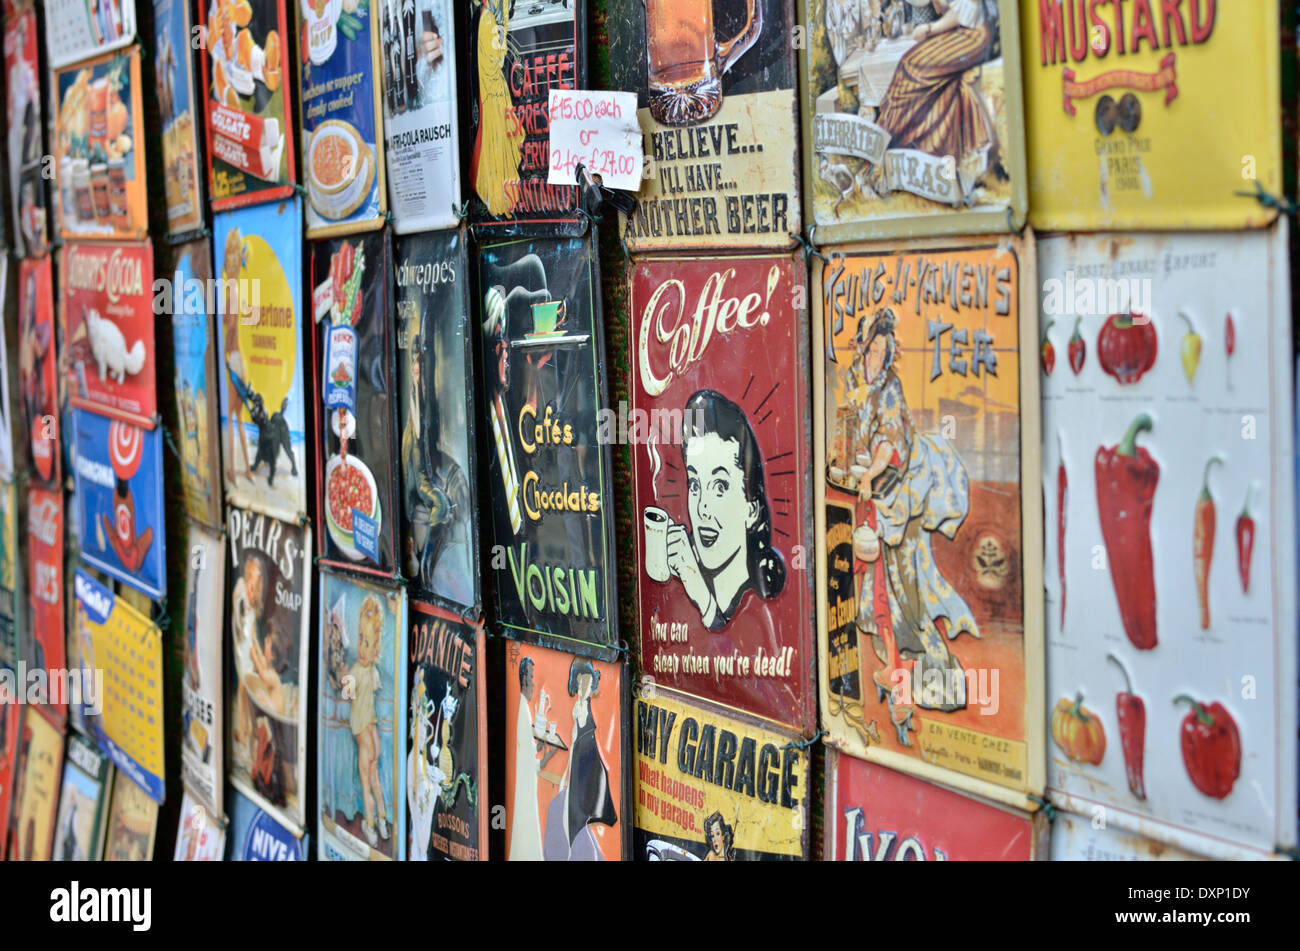 Old tin sign product advertisements, Portobello Road, Notting Hill, London, UK. - Stock Image